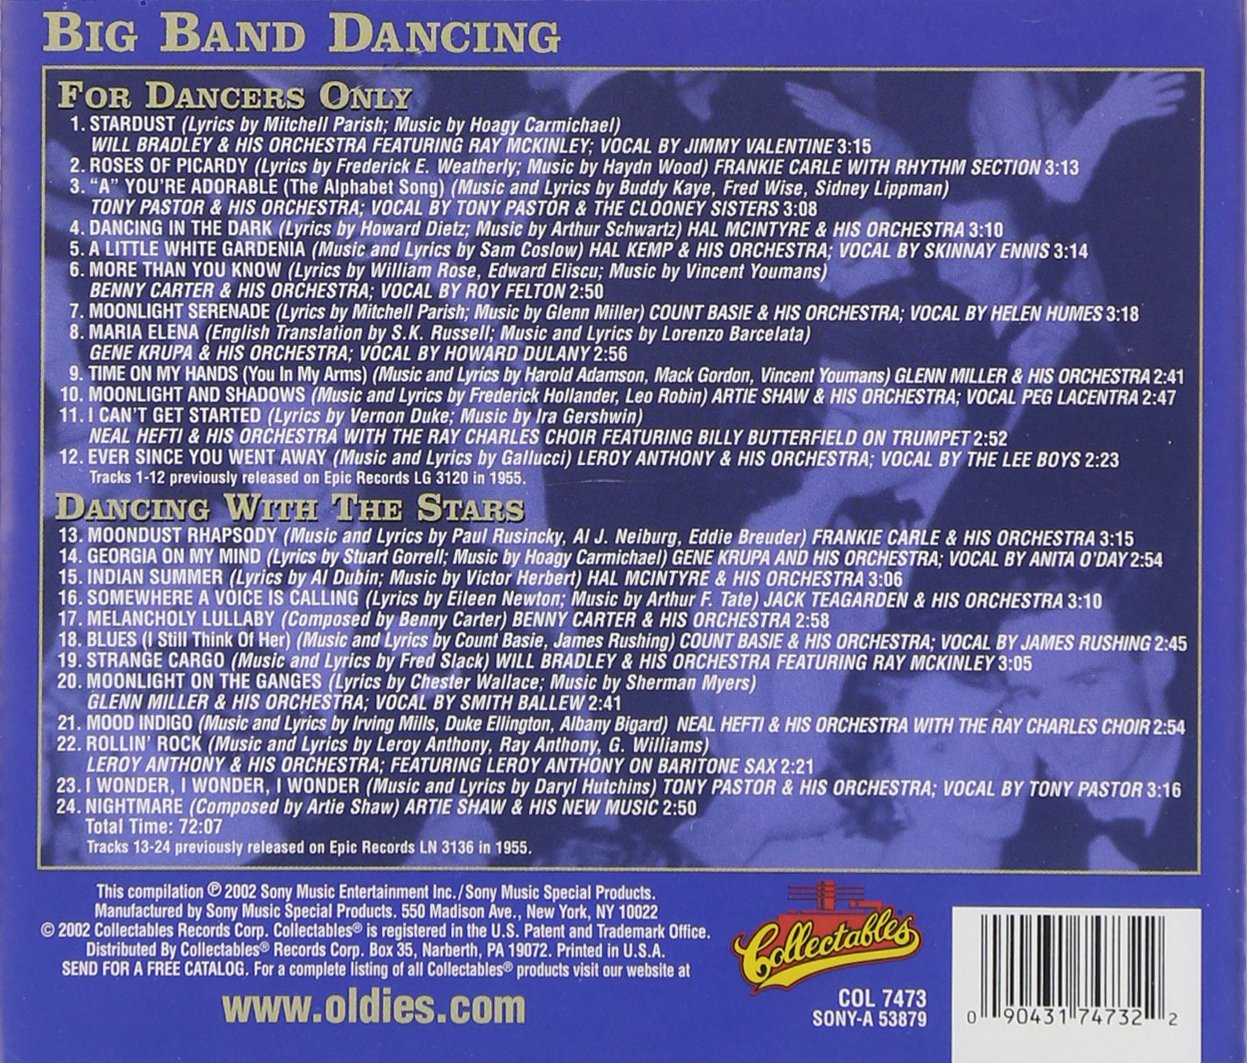 VARIOUS ARTISTS - For Dancers Only / Dancing with the Stars - Amazon.com Music